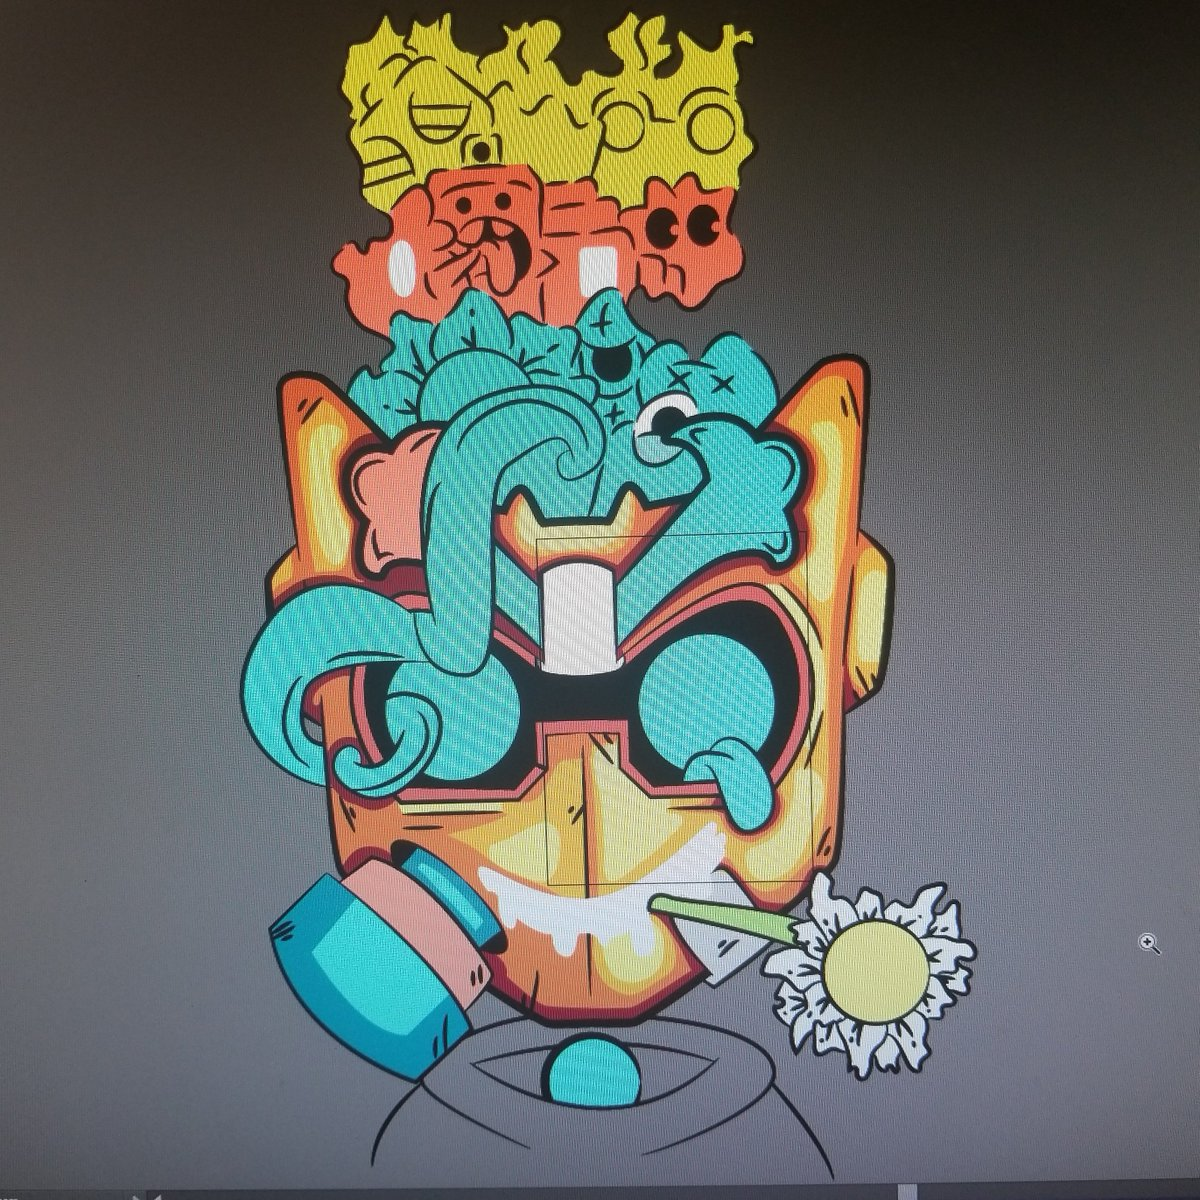 Yo thank you for watching the stream last night which I will continue tonight at 8pm of the villian mask   I'm re doing my store n see which prints I'll retired n which ones will be the new ones   http://Twitch.tv/jonnyboig   #digitalartist #digitaldesign #vector #vectorart #twitchpic.twitter.com/KclFqN1WGy